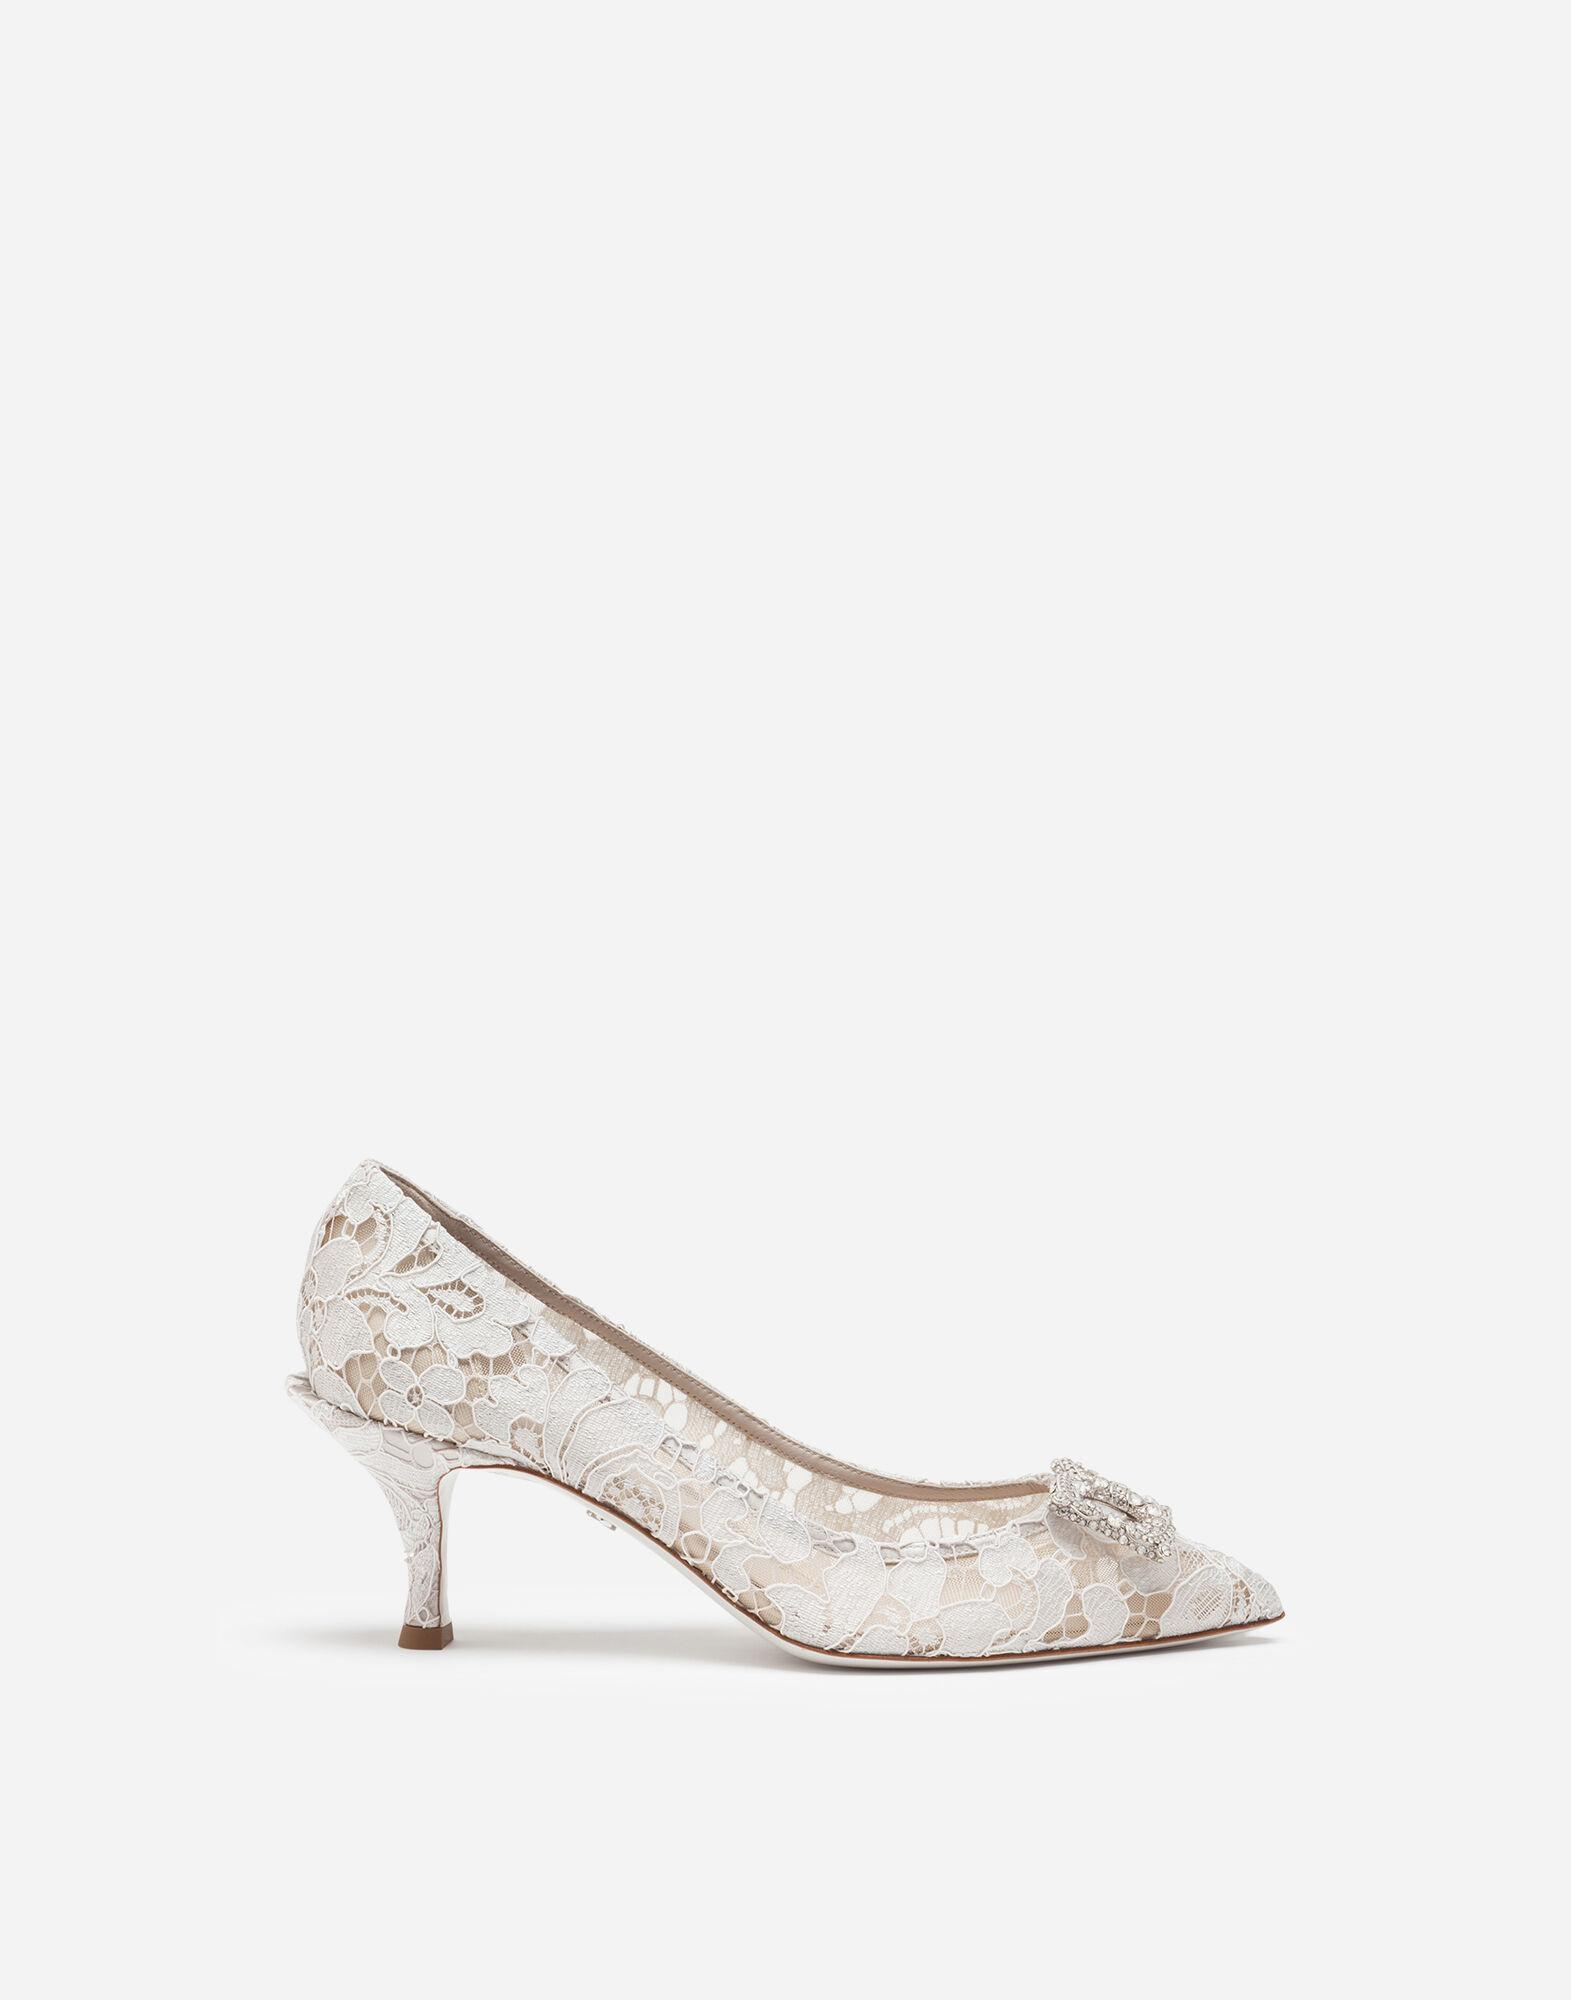 Taormina lace pumps with DG Amore logo